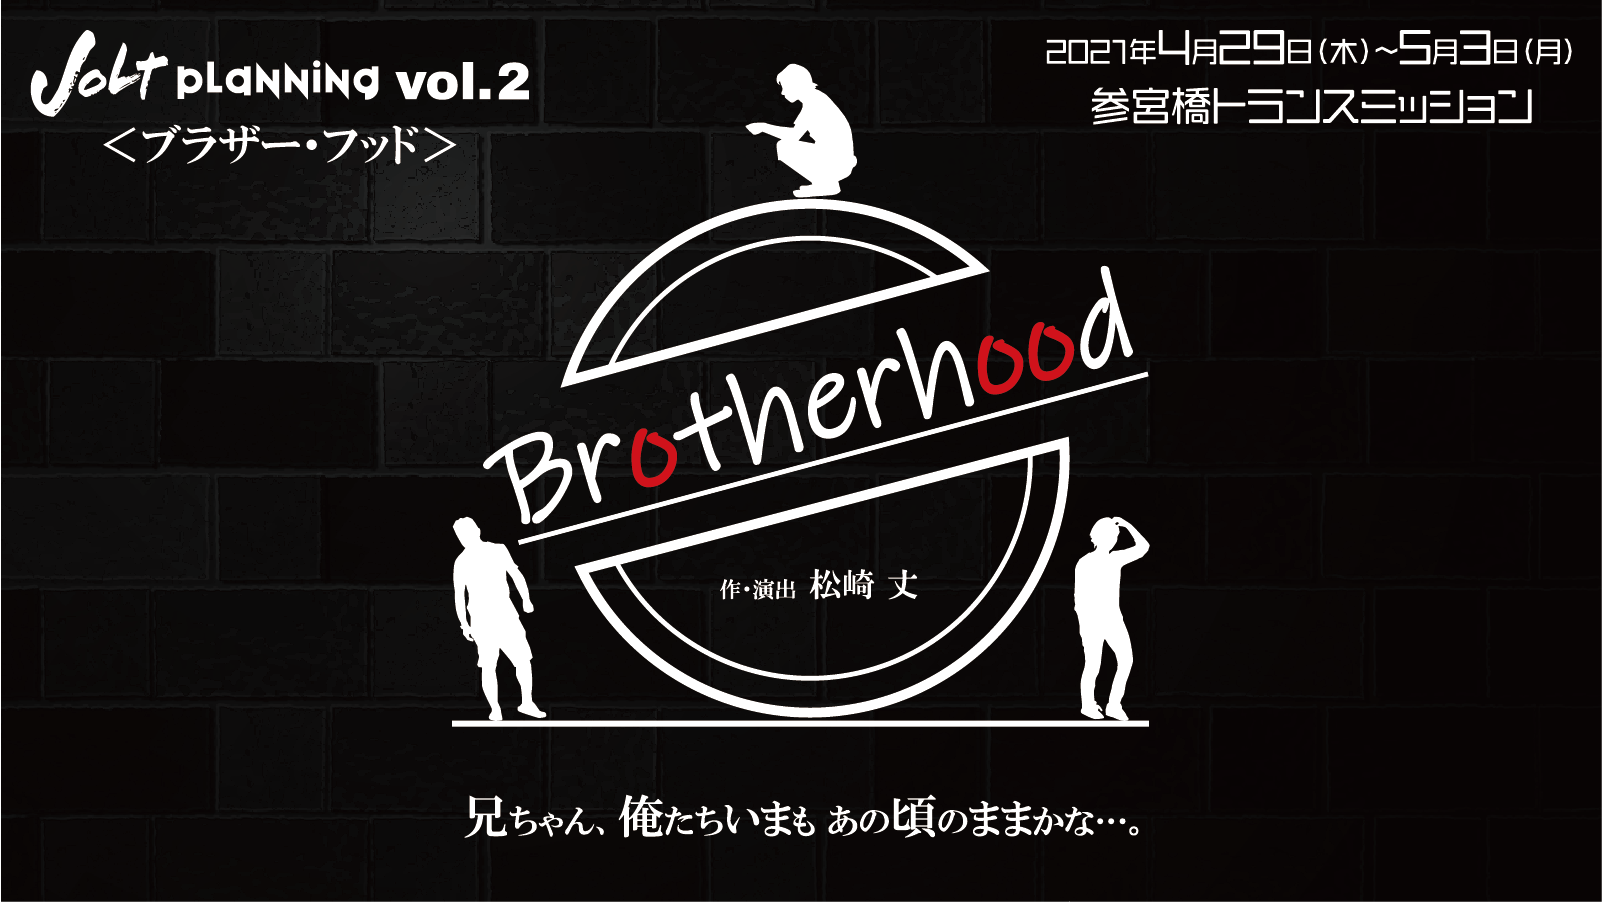 JOLT planning vol.2『Brotherhood』公演詳細